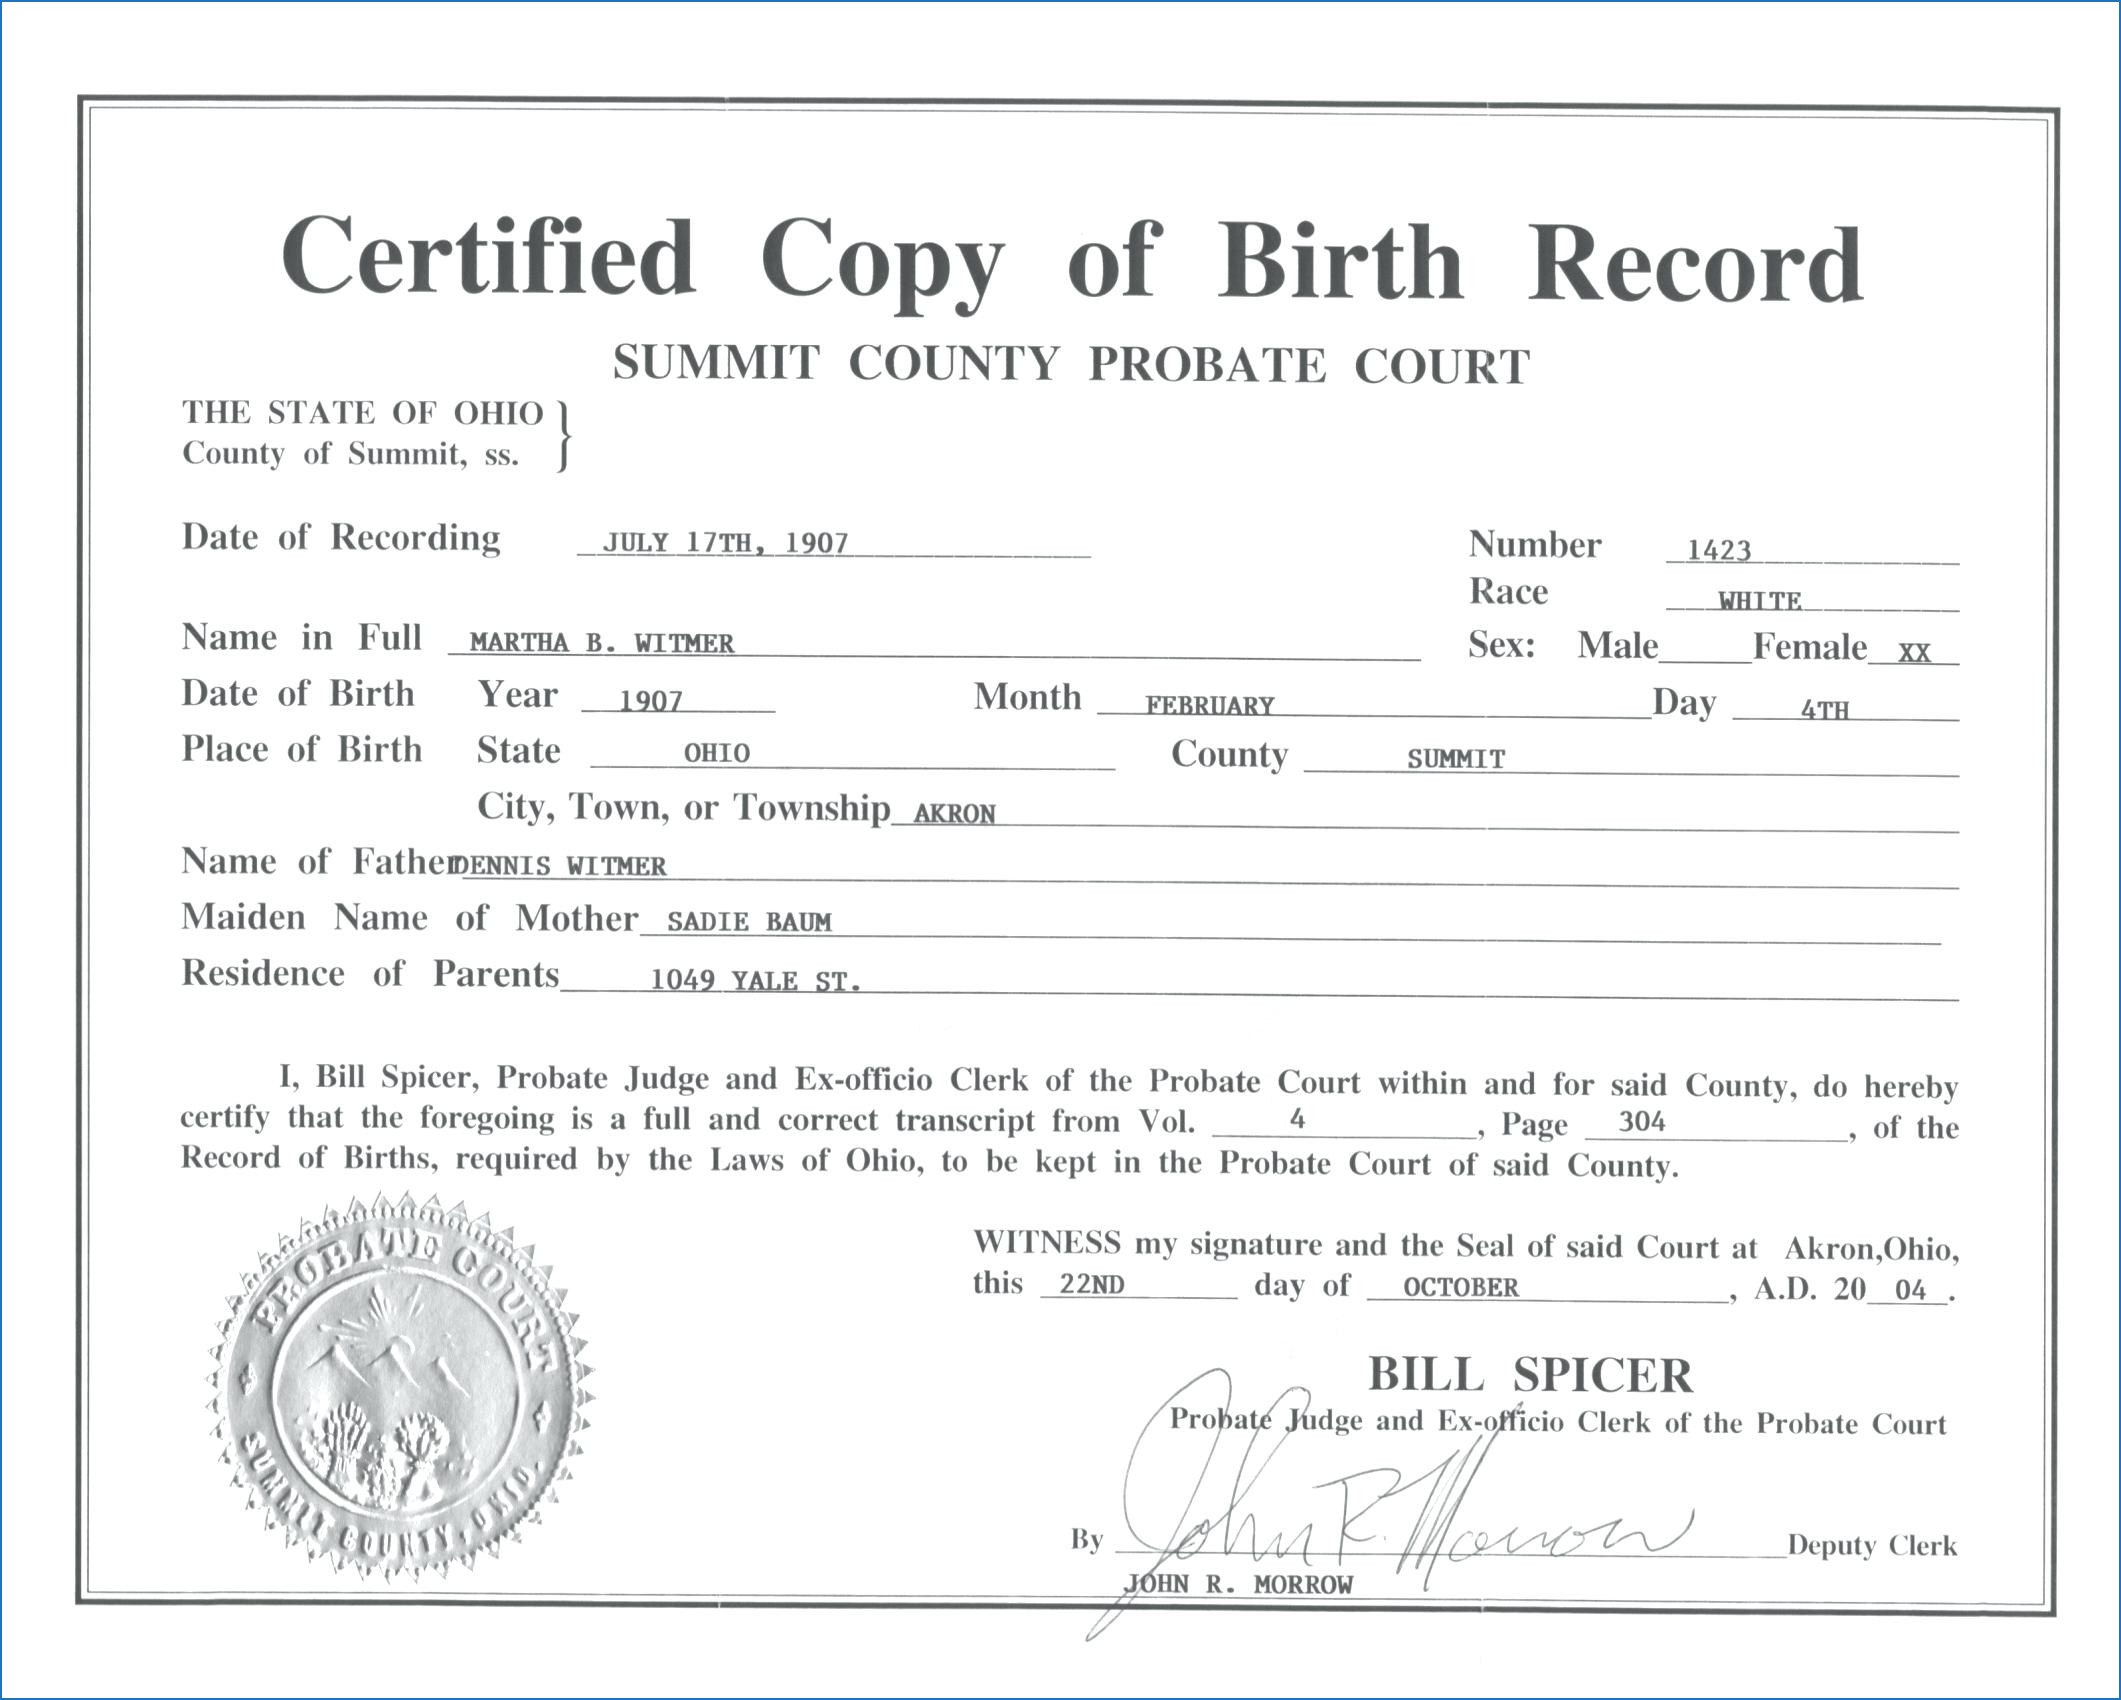 Birth Certificate Designs  Sansurabionetassociats Regarding Birth Certificate Fake Template